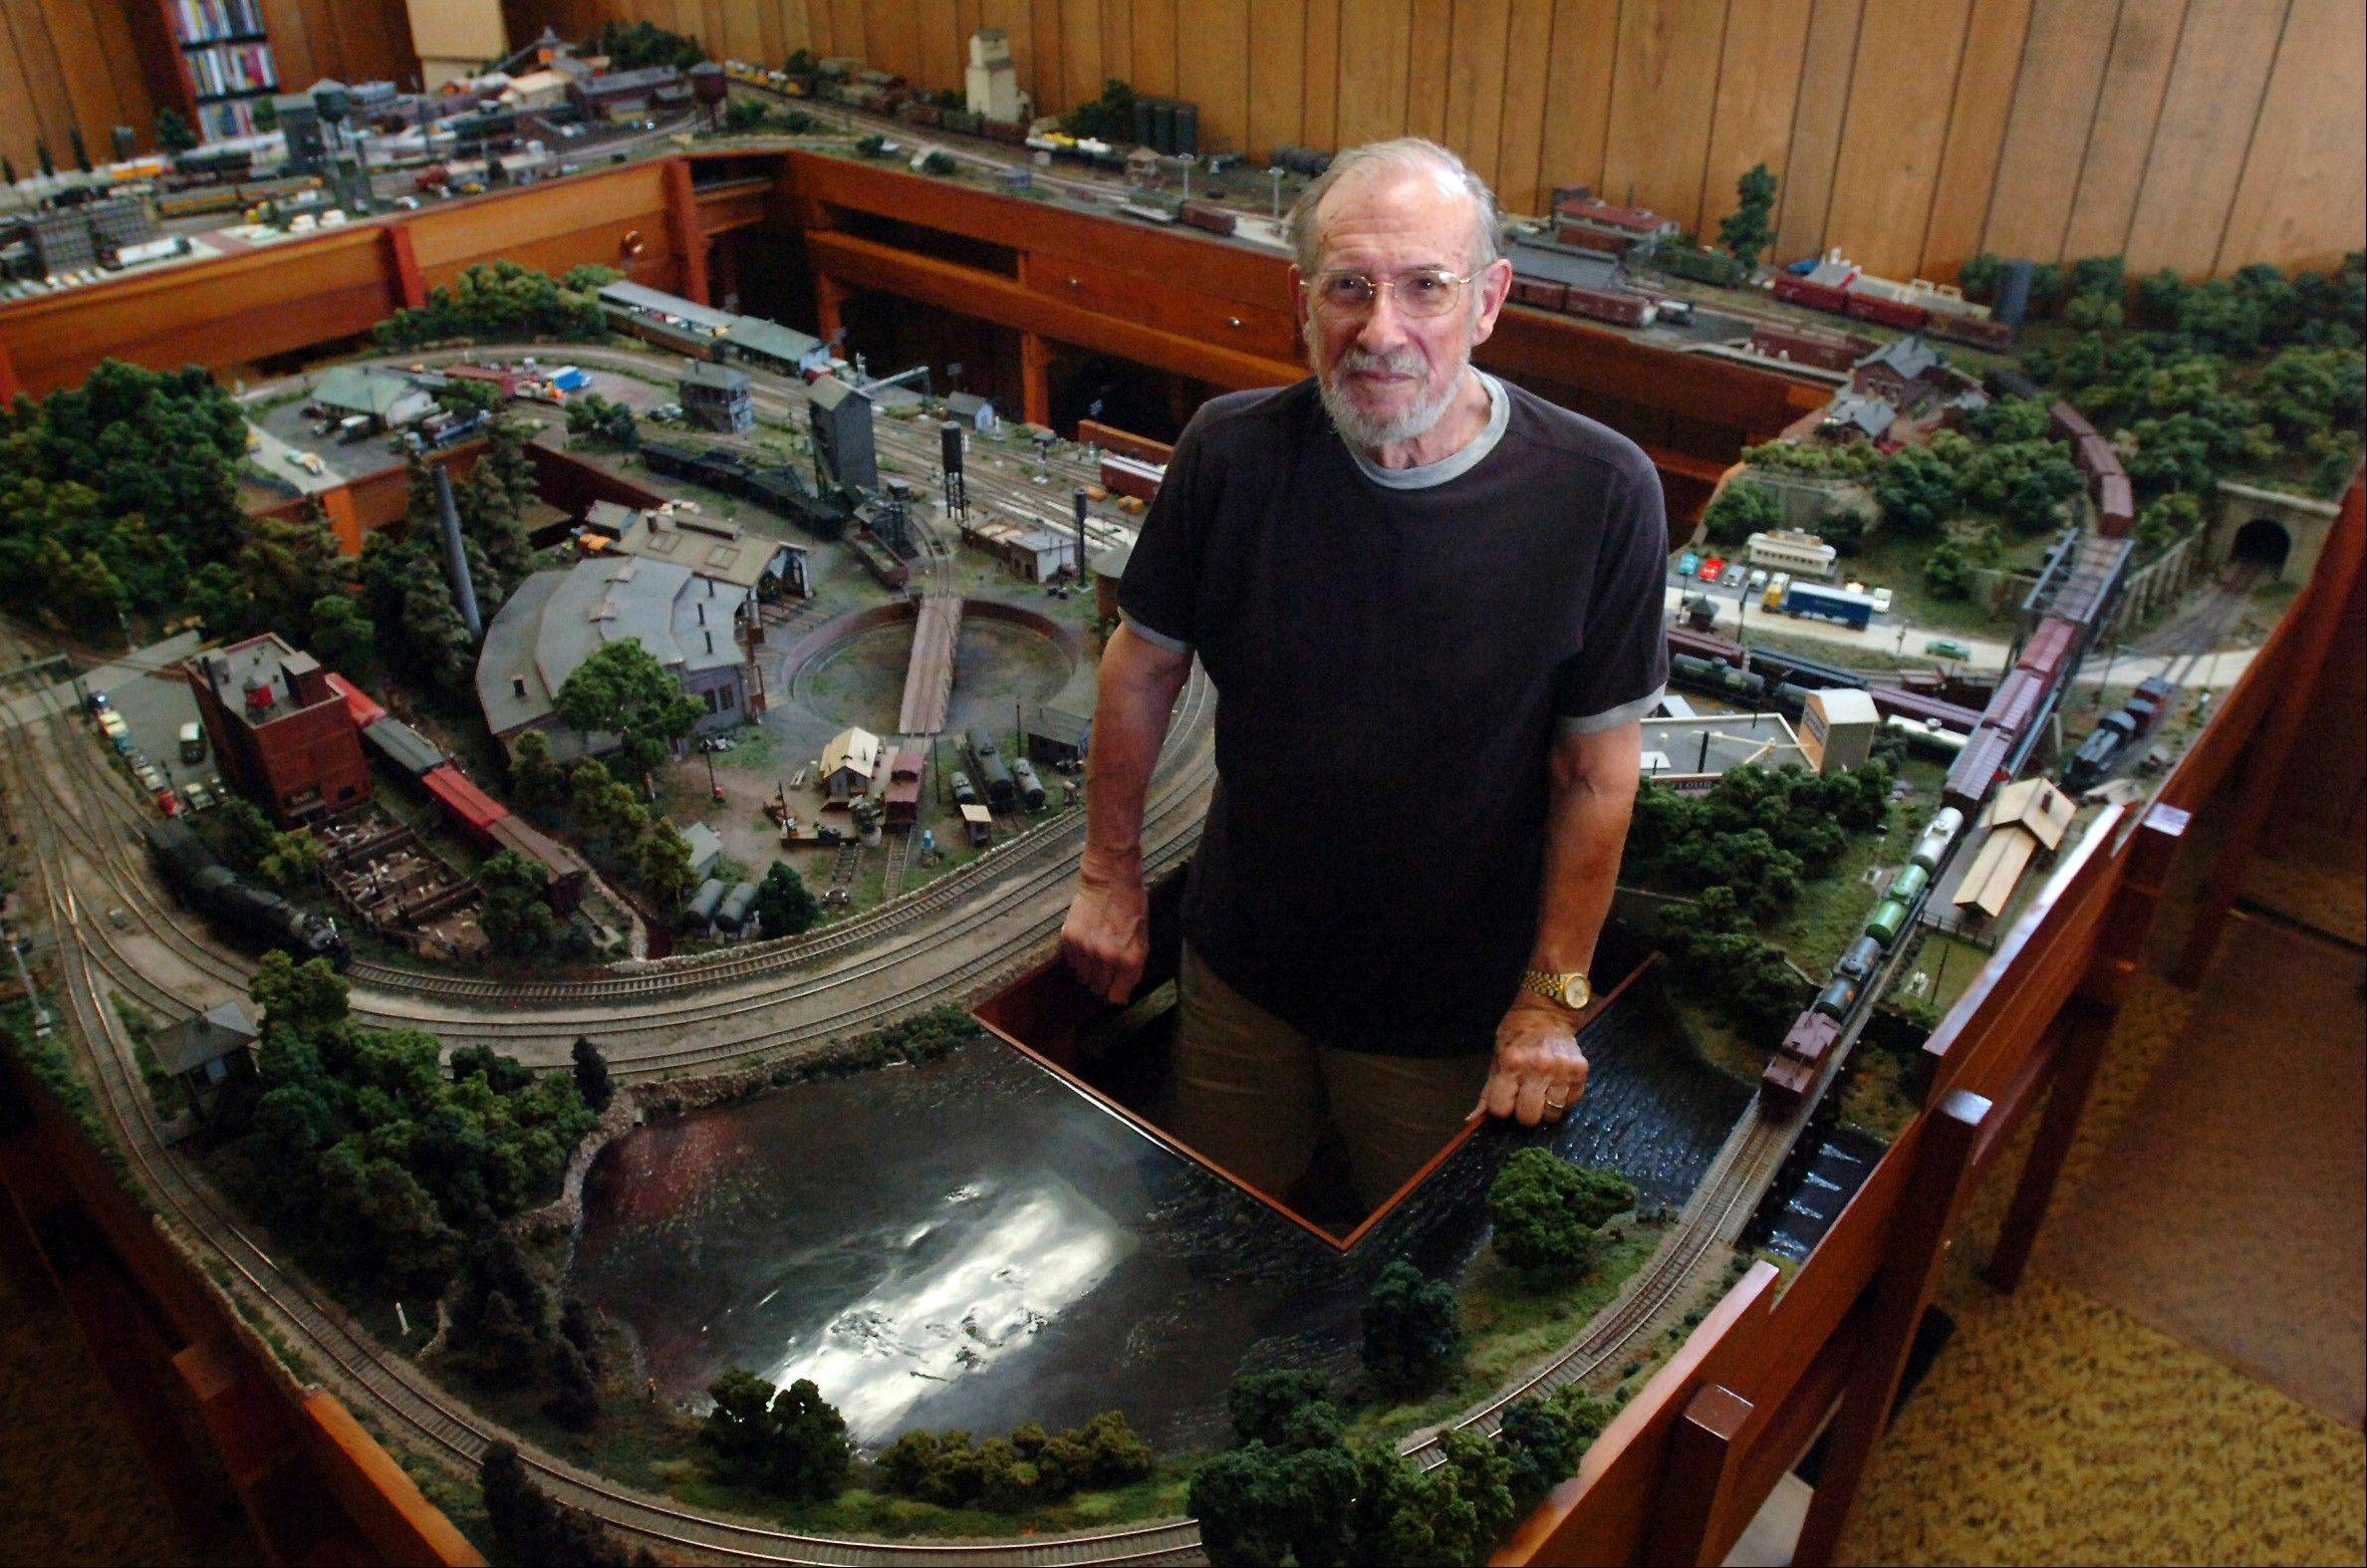 Model railroader Jerry McRoberts stands inside his HO gauge layout at his home in Charleston, Ill. (AP Photo/Journal Gazette, Ken Trevarthan)